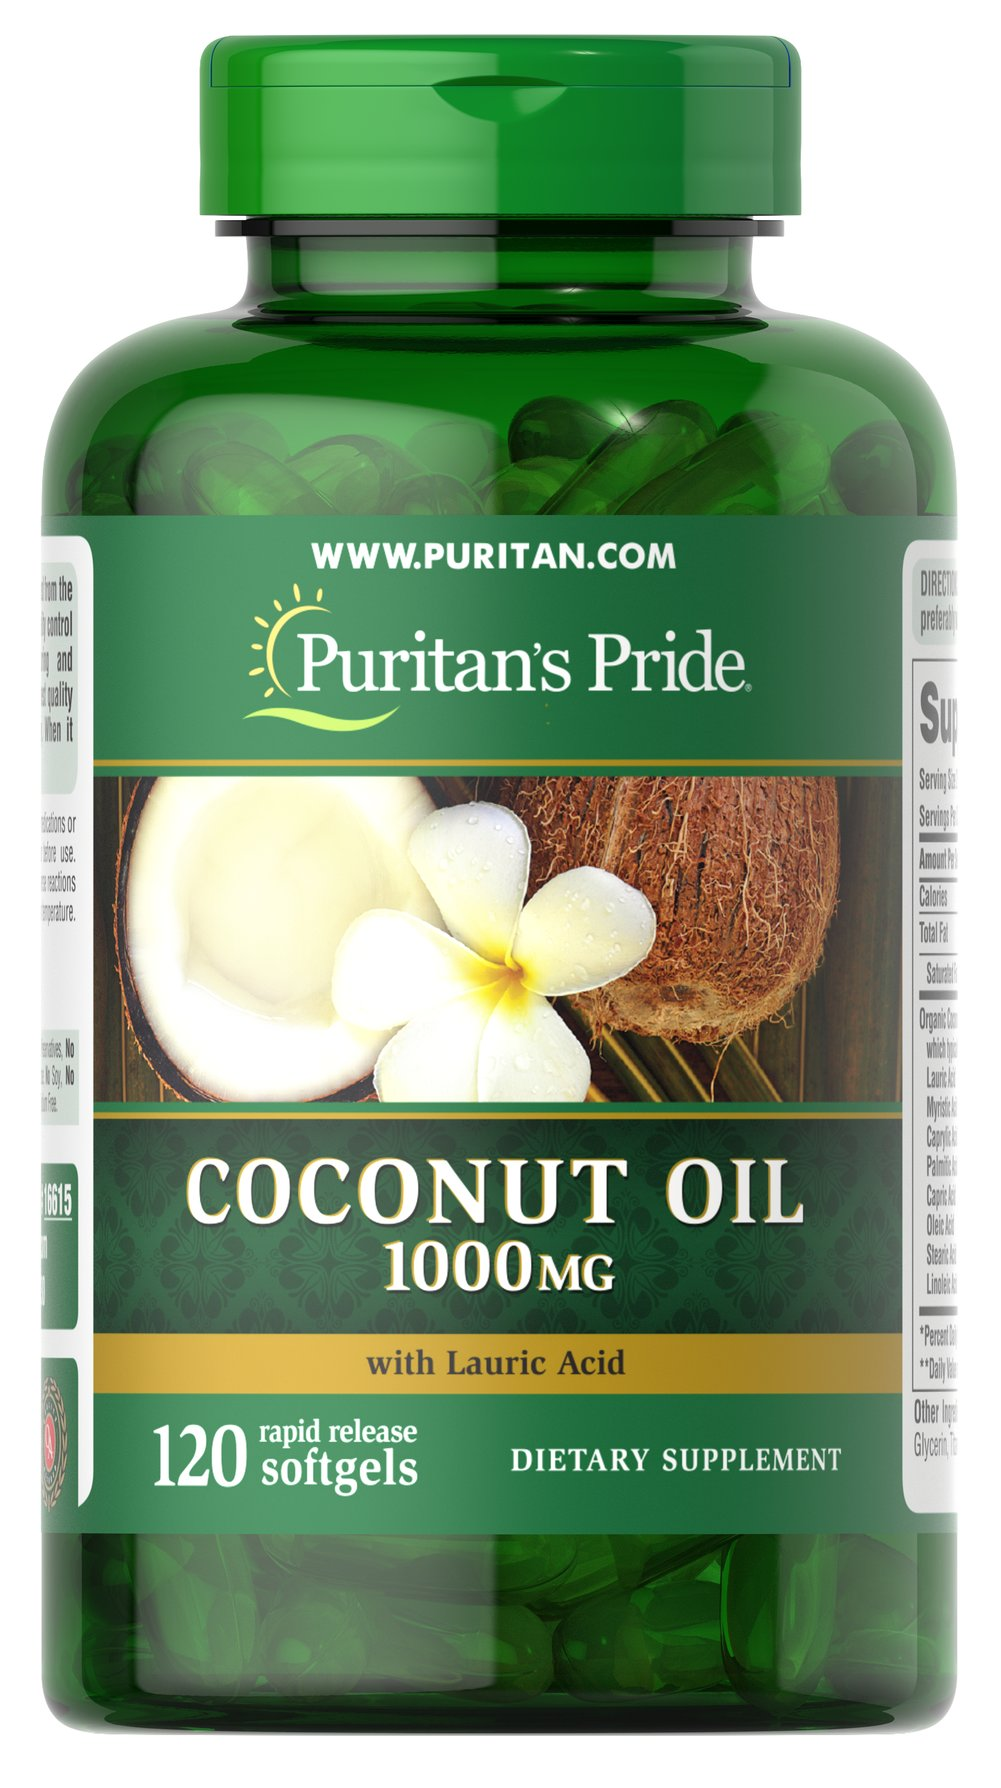 Coconut Oil 1000 mg <p>Coconuts are enjoyed in tropical regions around the world and now you can enjoy the benefits of Coconut Oil in a convenient softgel. Coconut Oil provides you with a natural energy source, and contains essential fatty acids and Medium Chain Triglycerides (MCTs).   MCTs are oxidized differently in the body than other fats, making Coconut Oil a readily available energy source.**</p> 120 Softgels 1000 mg $19.99